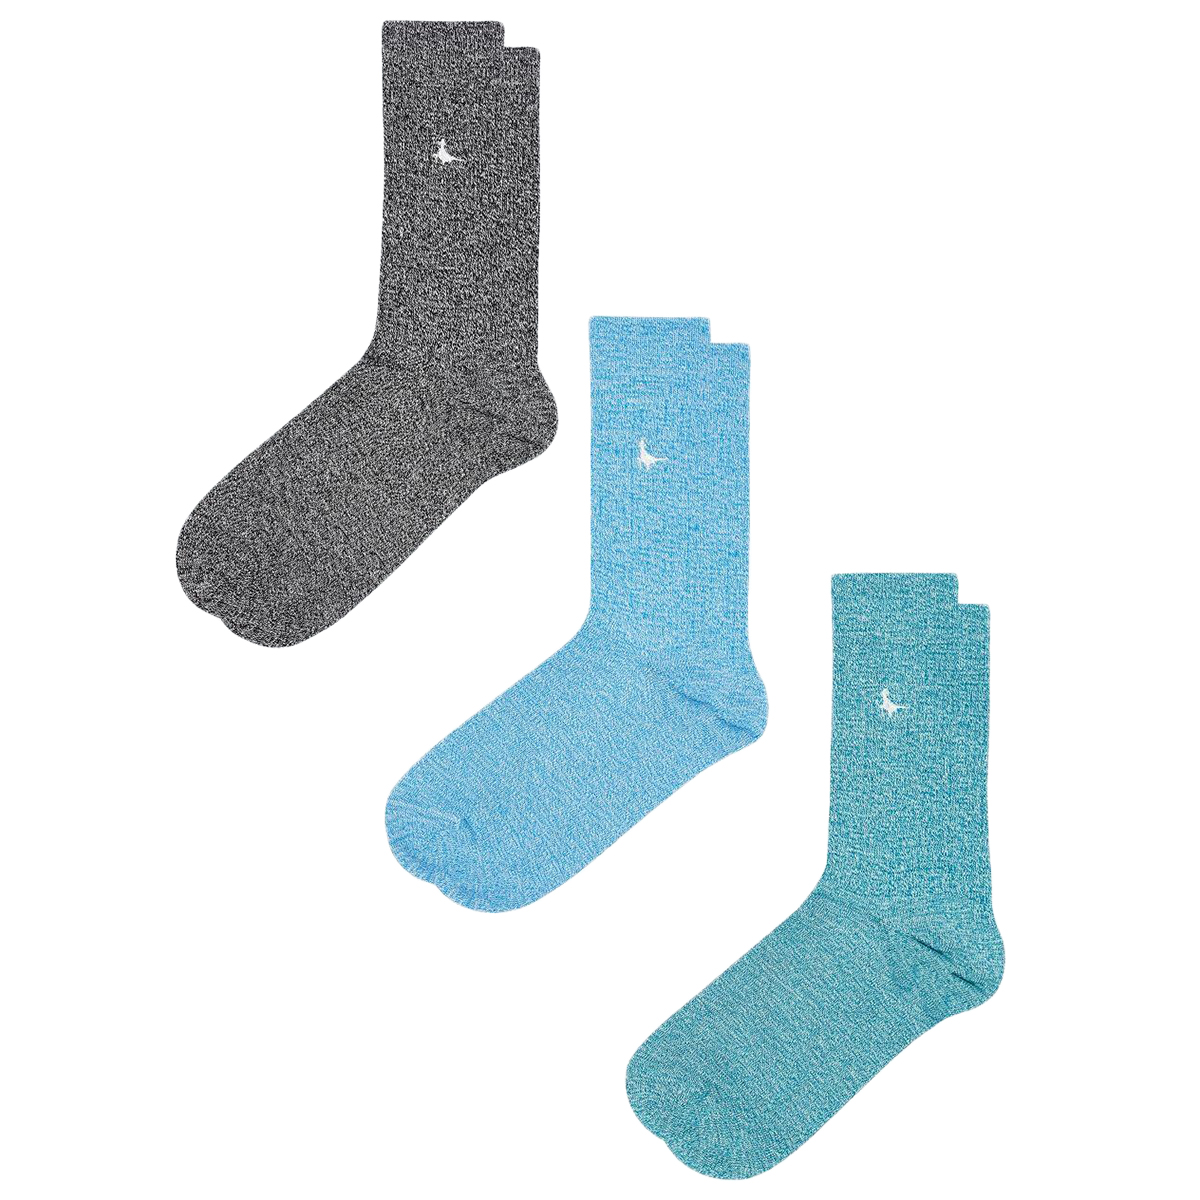 Jack Wills Men's Ringswell Ankle Socks, 3 Pack